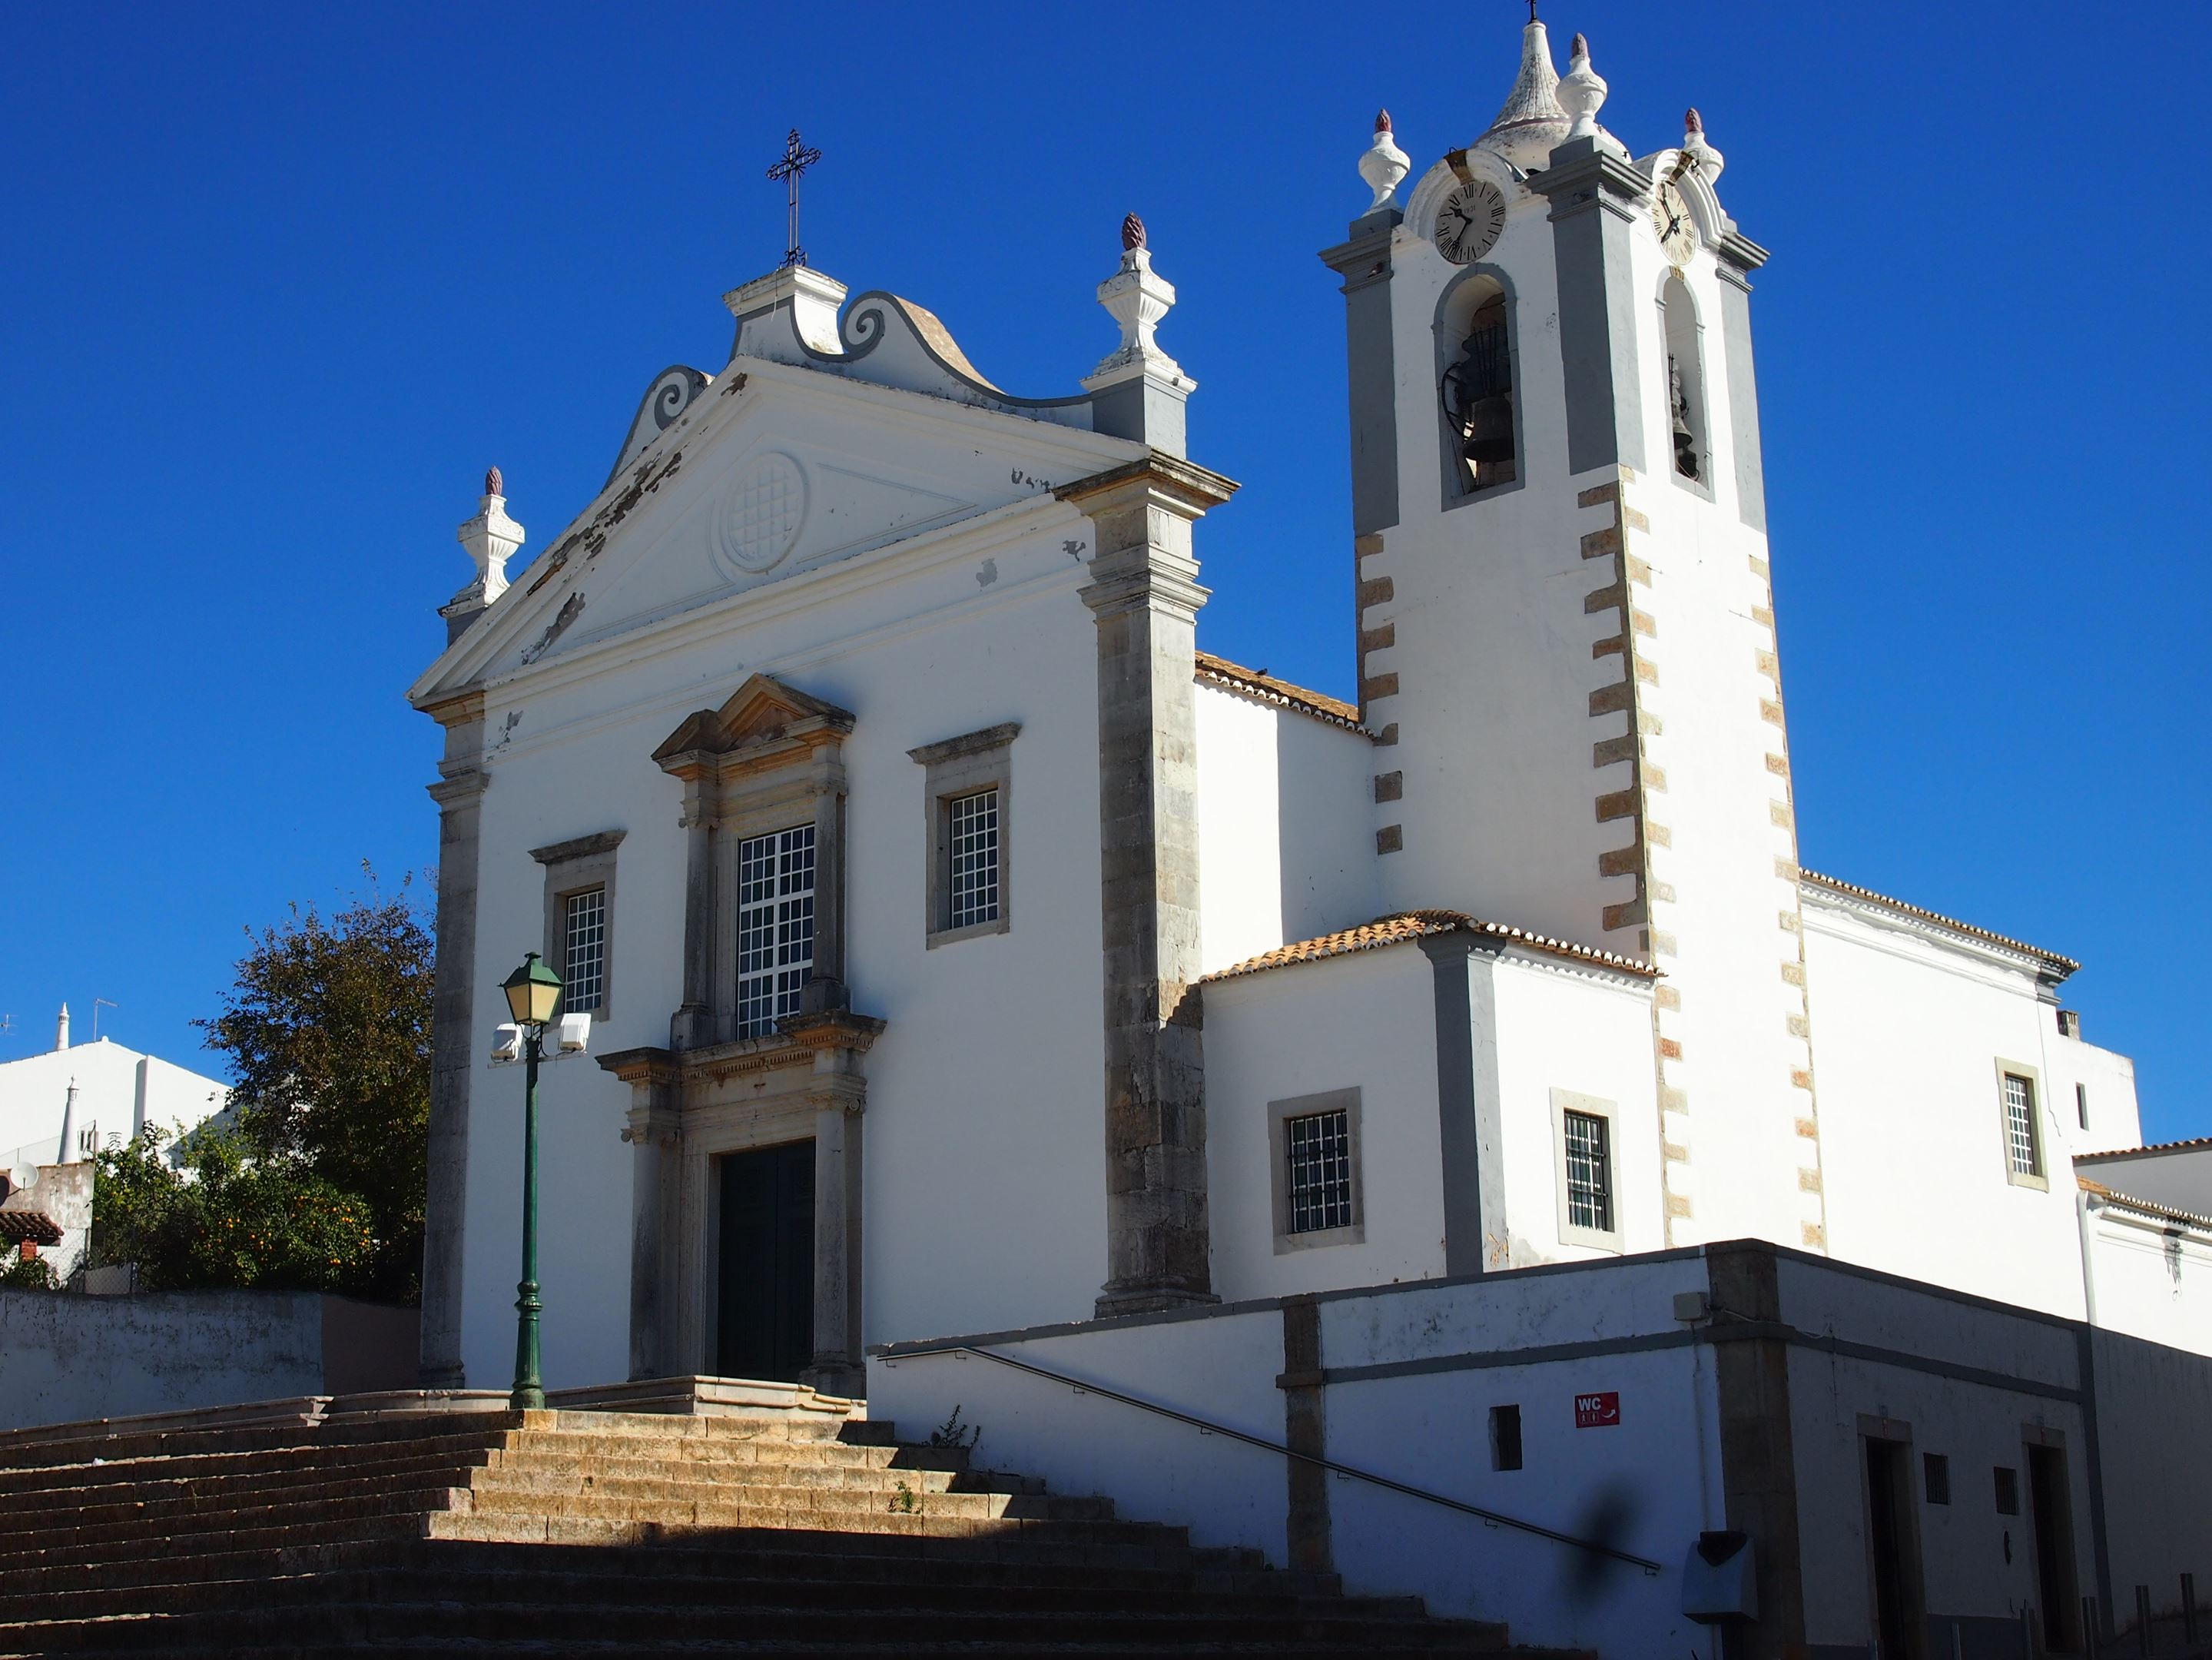 Estoi church - Igreja Matriz de Estoi, Algarve